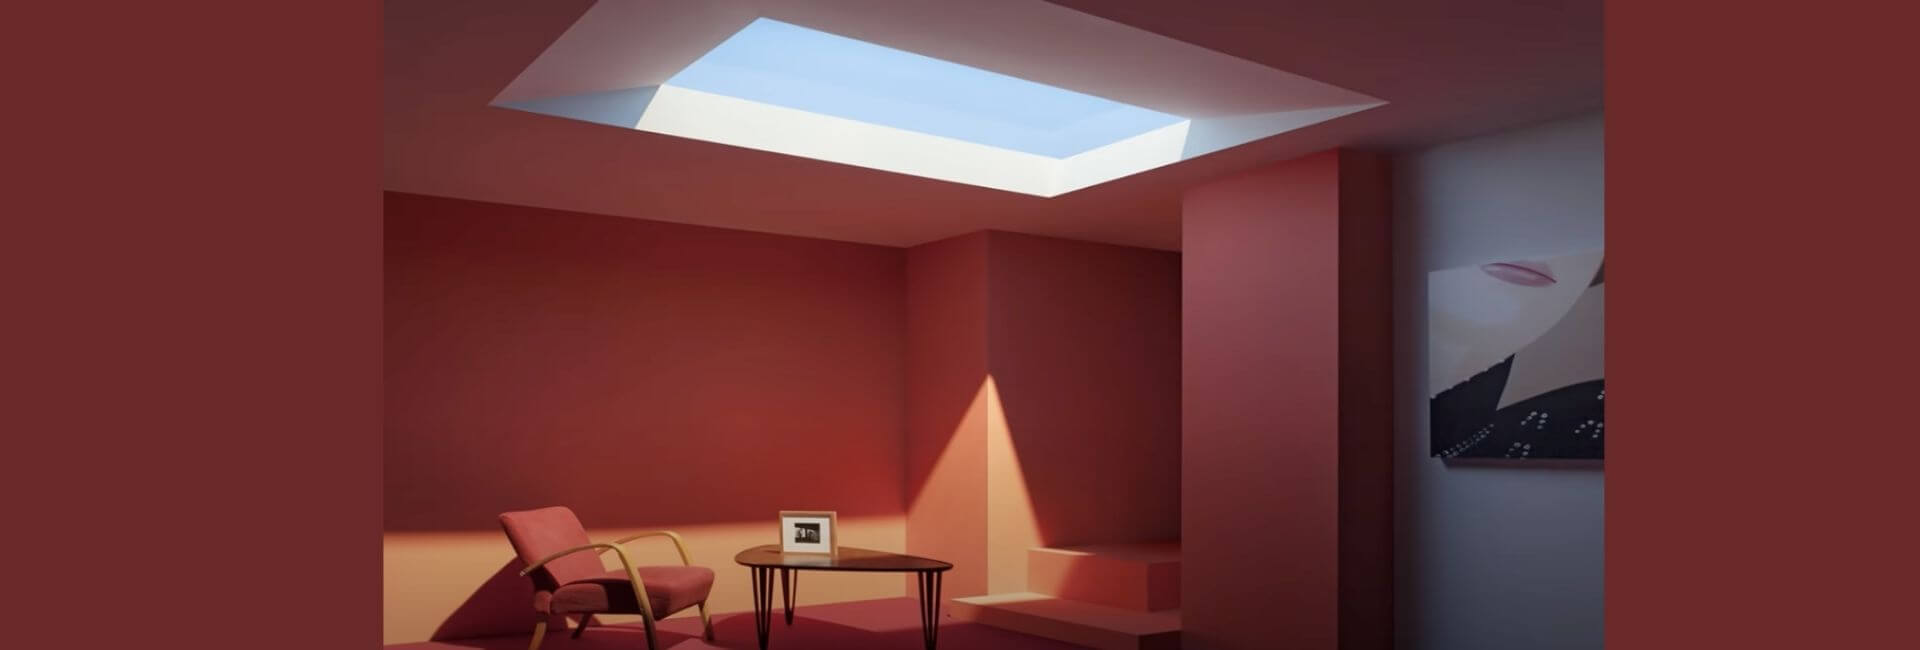 CoeLux Artificial Skylight System